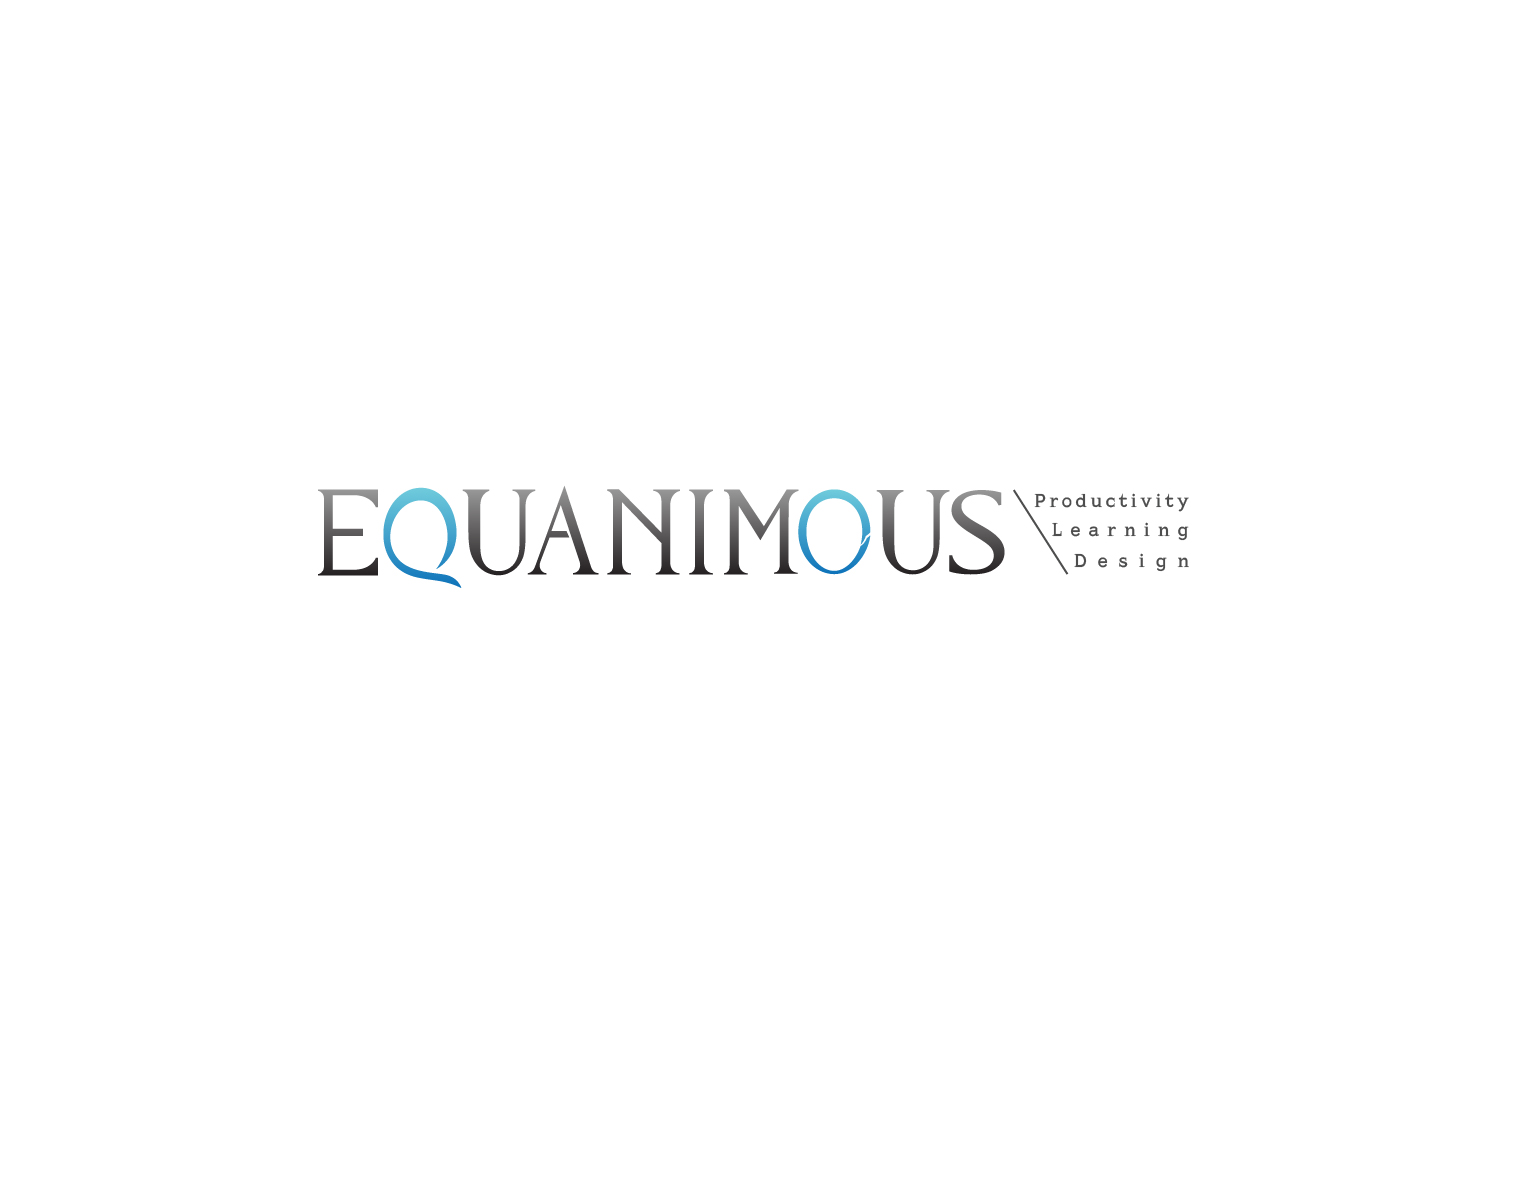 Logo Design by 3draw - Entry No. 415 in the Logo Design Contest Logo Design : EQUANIMOUS : Productivity | Learning | Design.